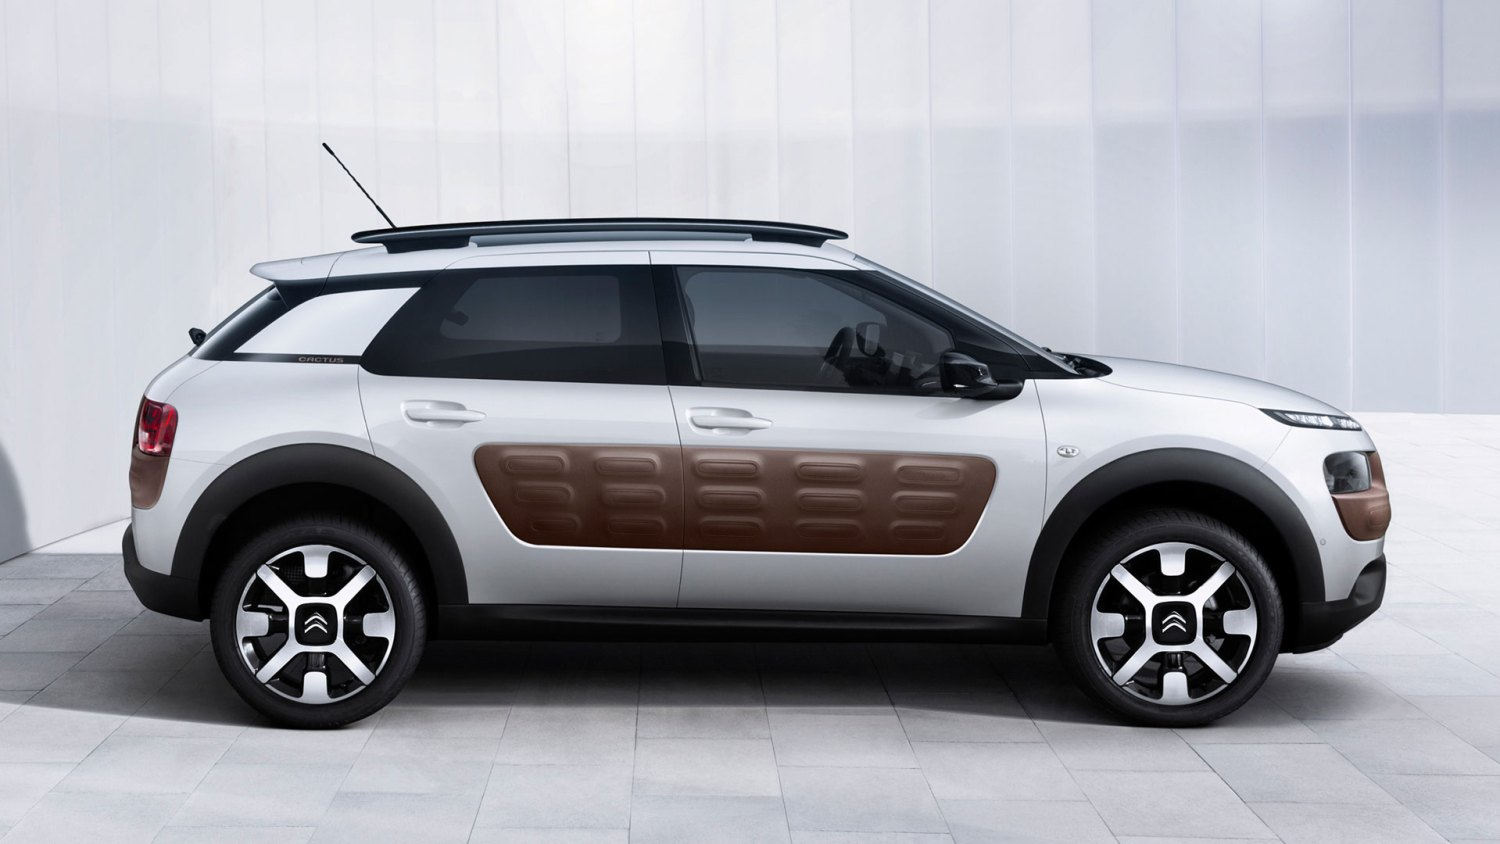 Citroen C4 Cactus - greatest cars of the decade